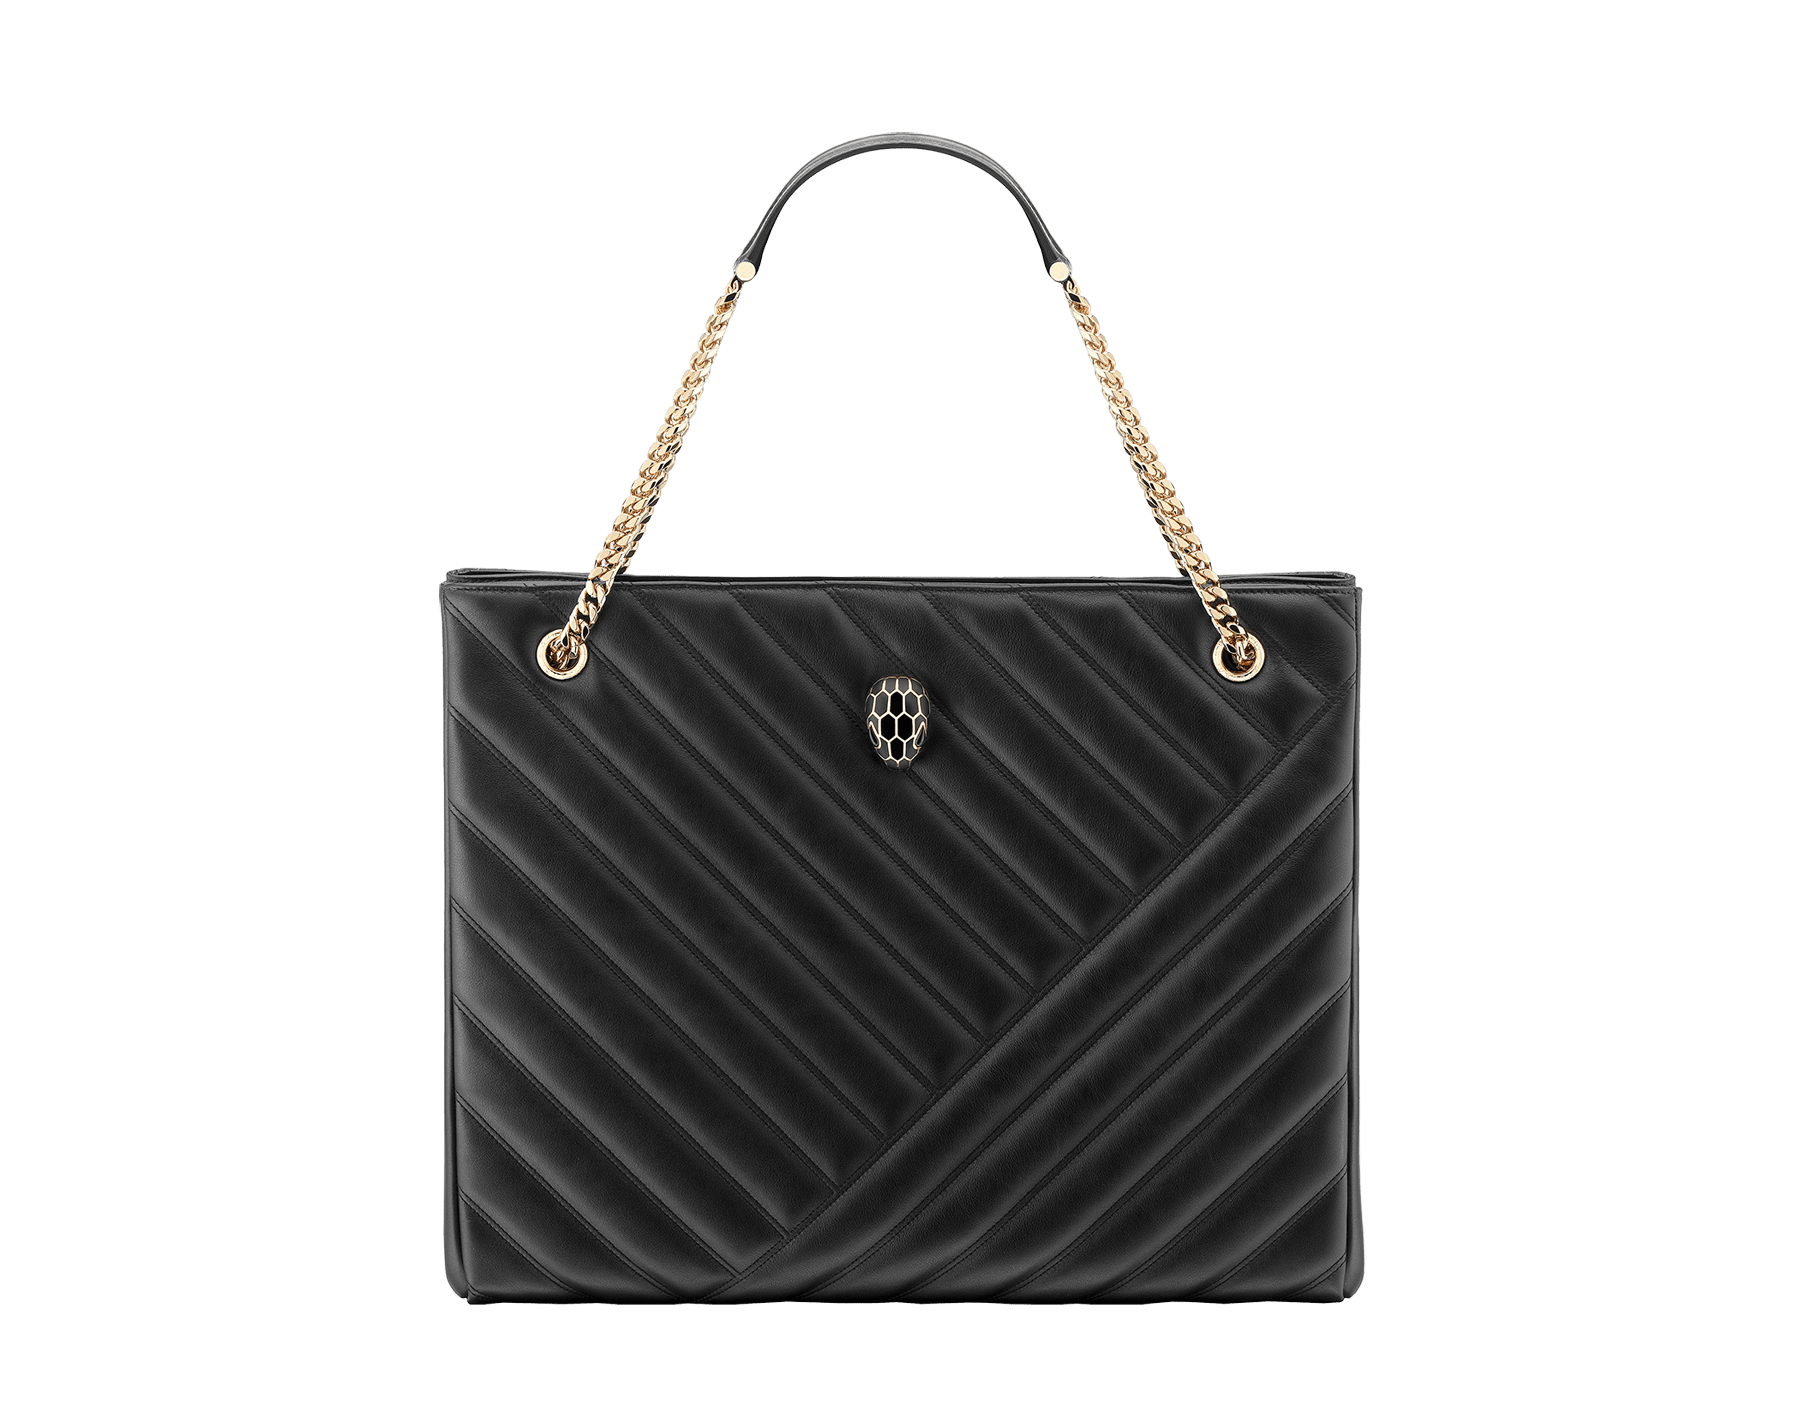 Serpenti Cabochon tote bag in soft matelassé black nappa leather with graphic motif and black calf leather. Snakehead decòr in rose gold plated brass embellished with matte black and shiny black enamel, and black onyx eyes. 287996 image 1